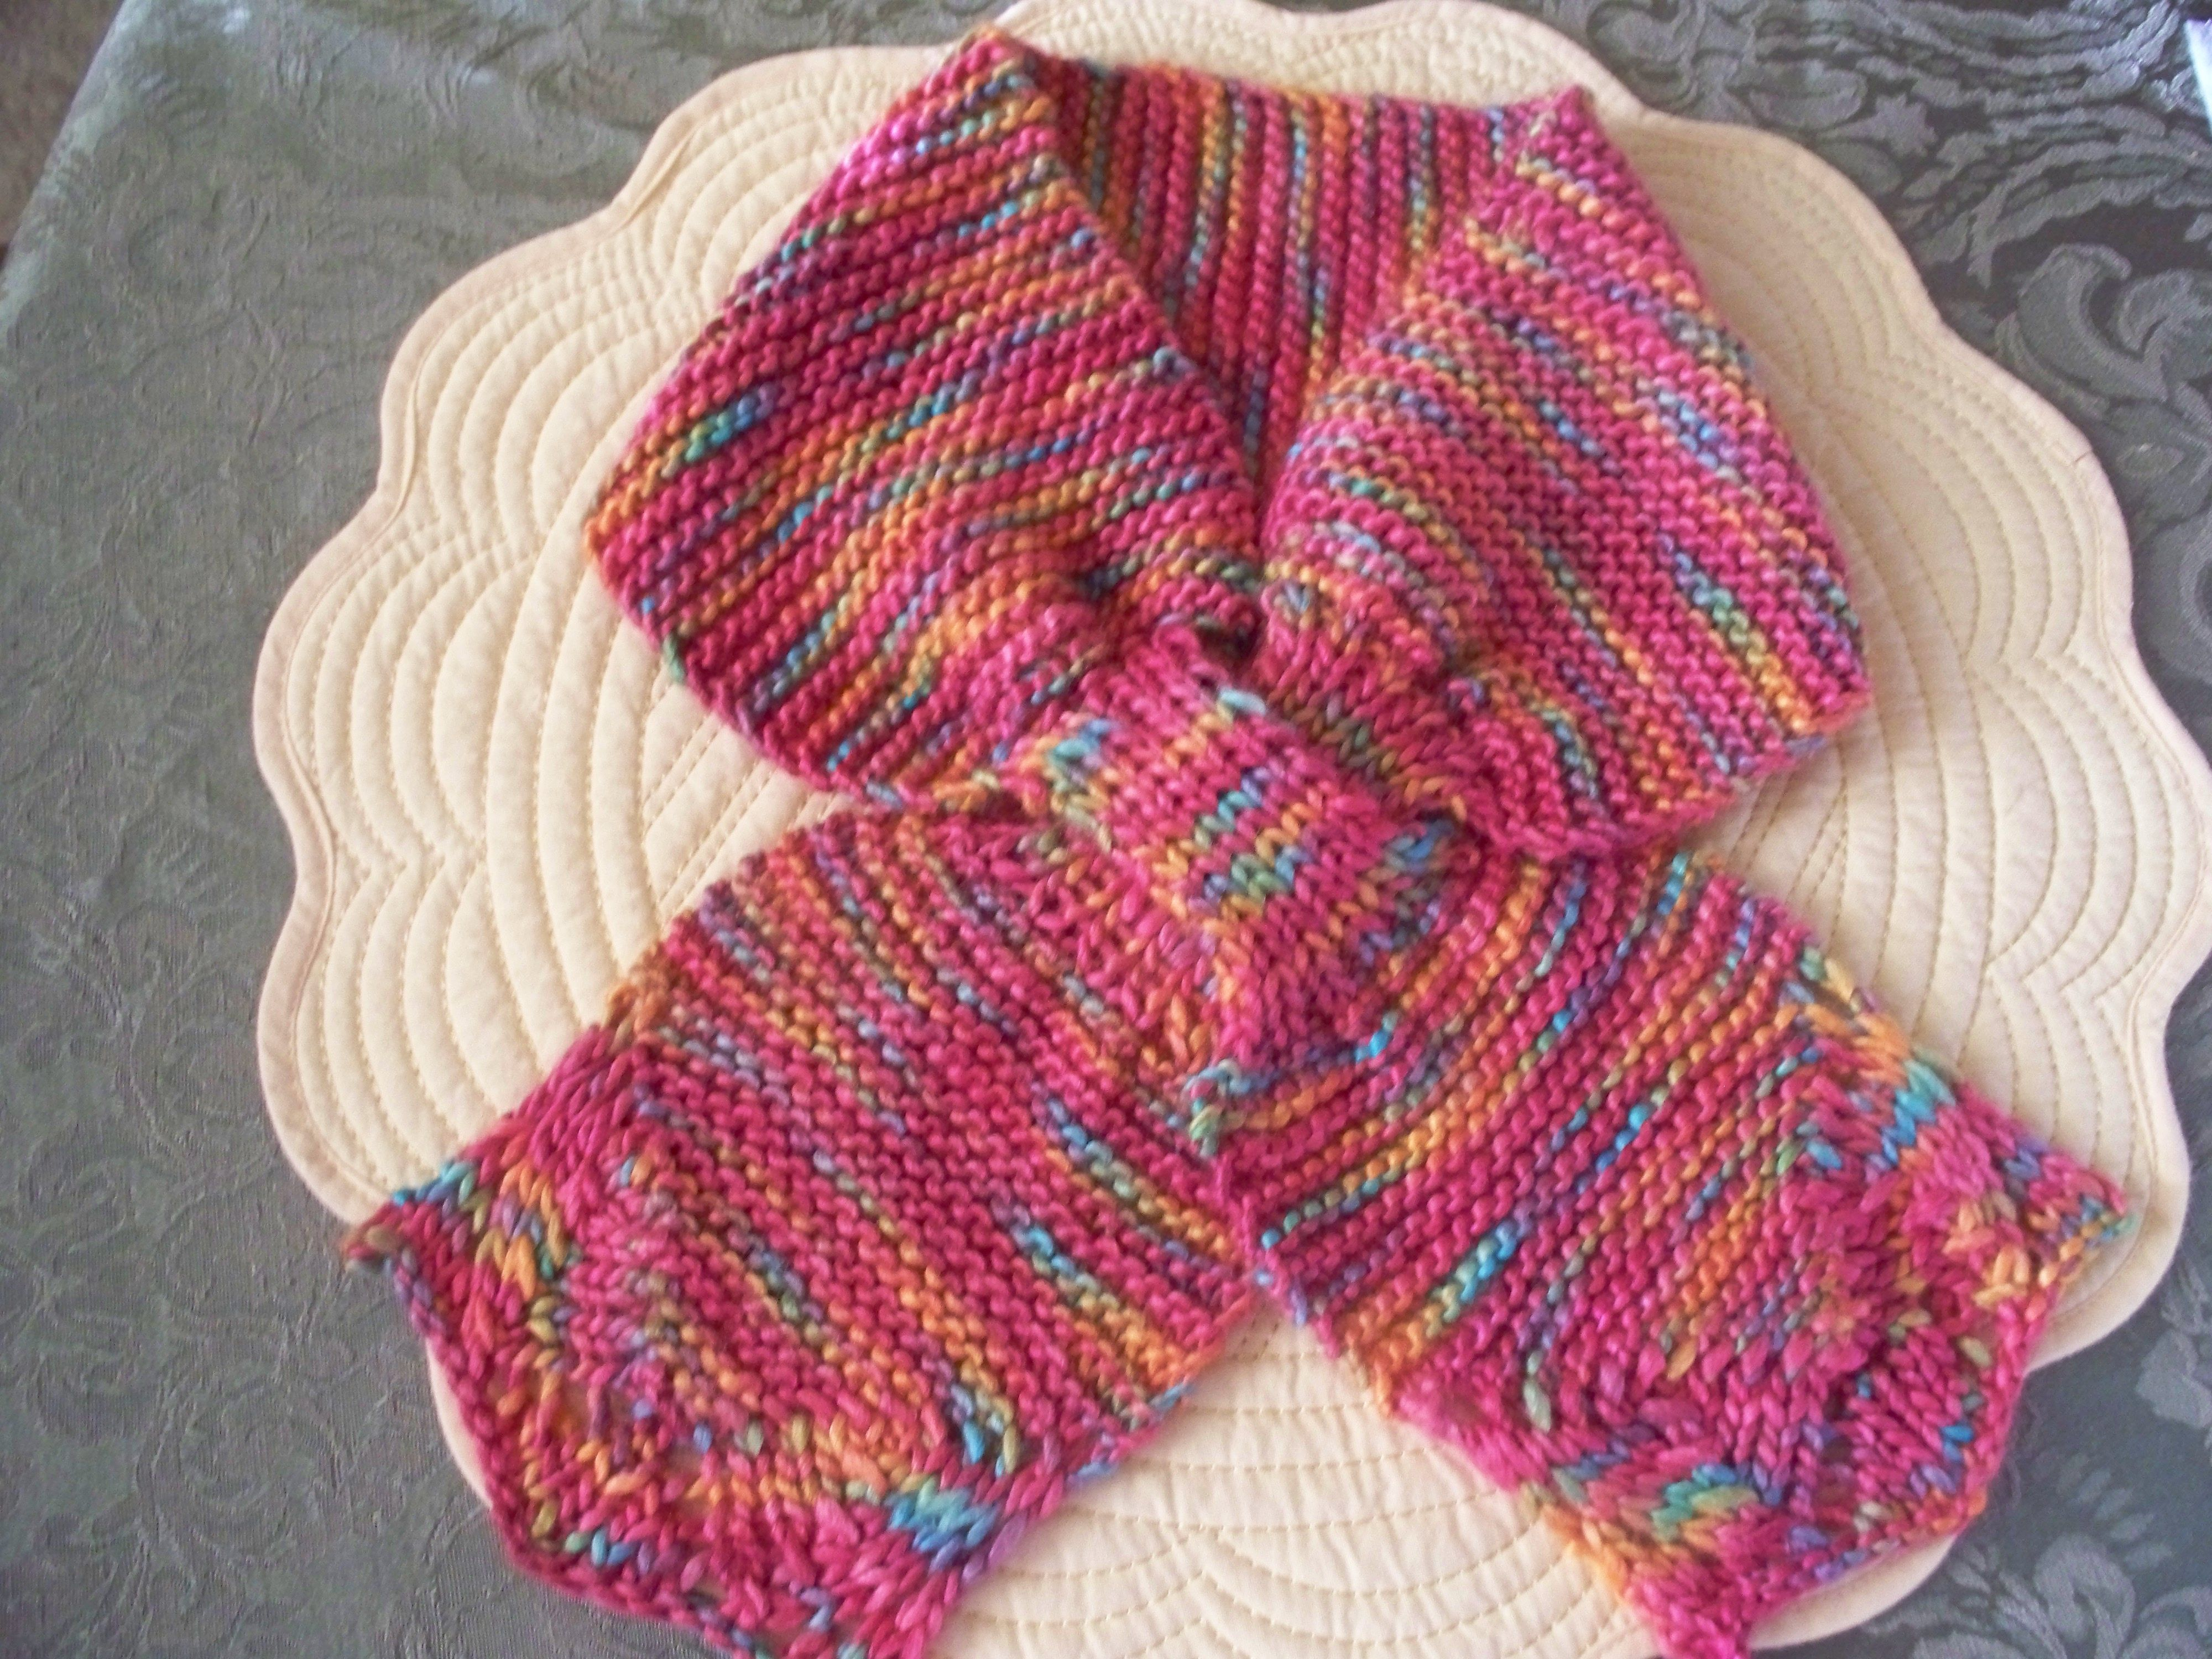 Knitting Accessories : Knit Noro Accessories Tulip scarf Knitting & Crocheting Pinterest